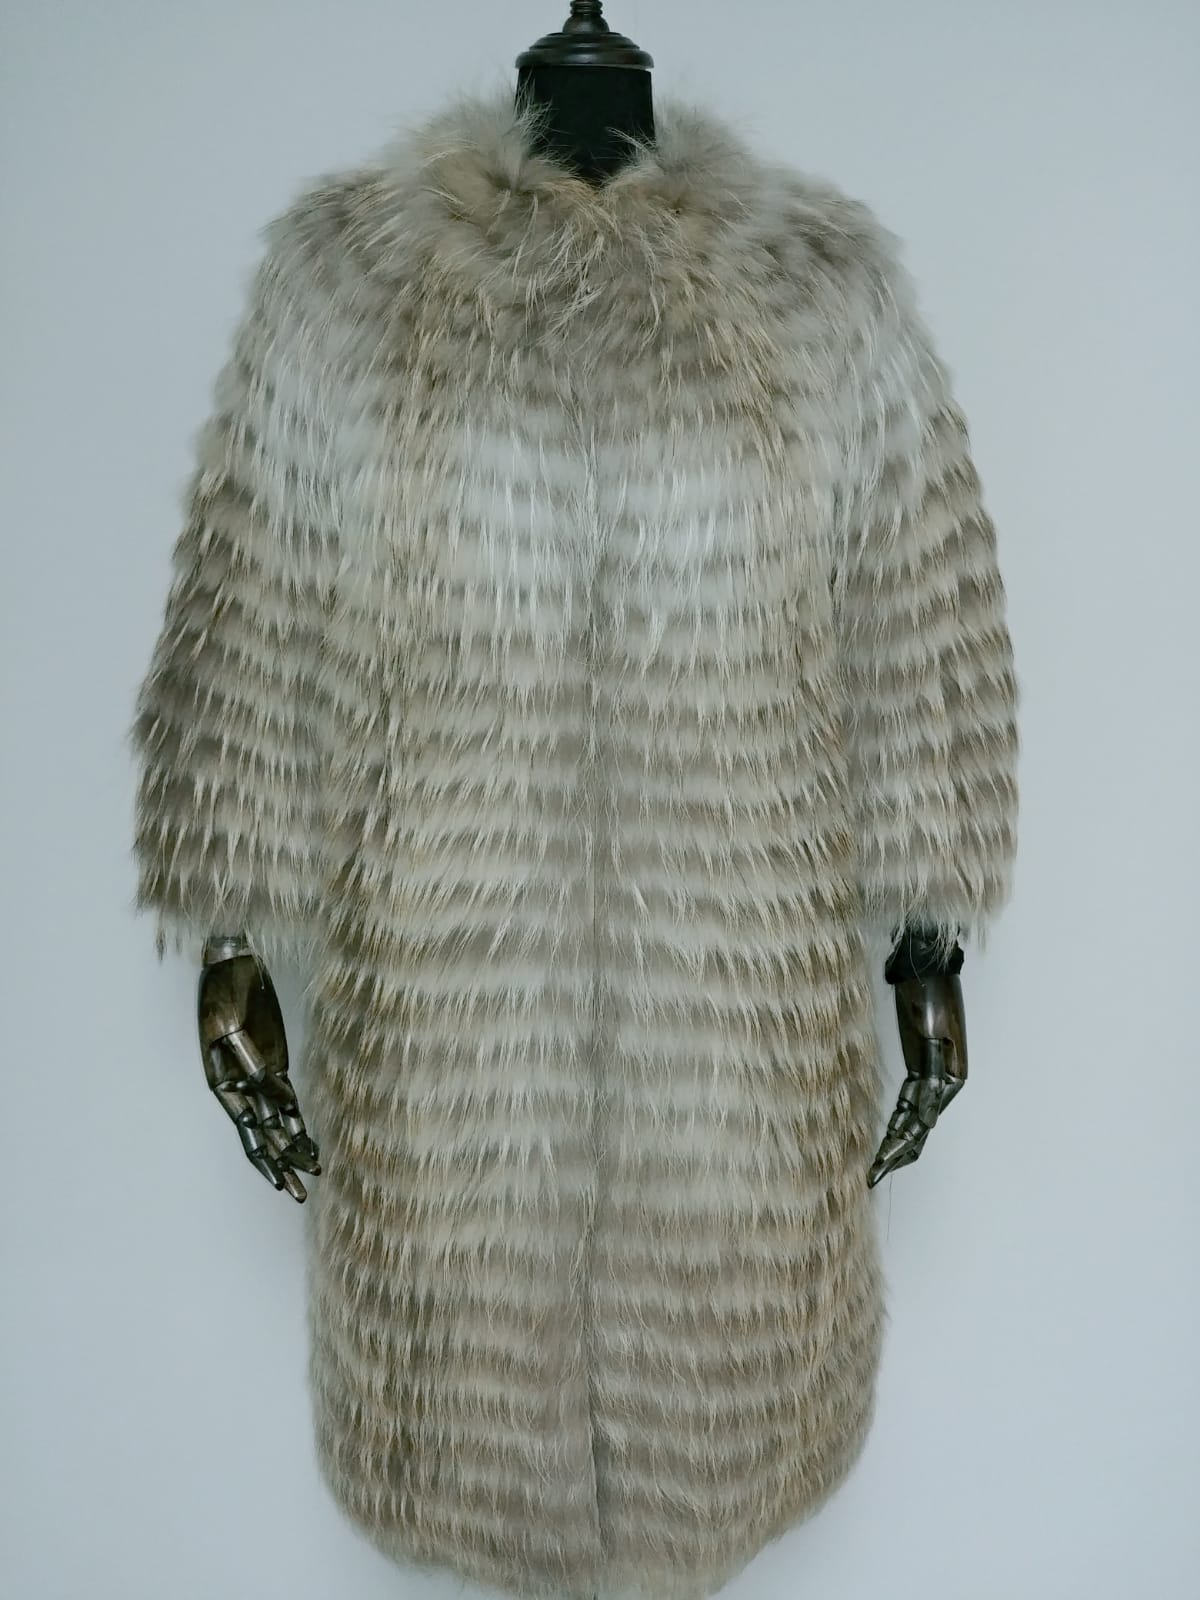 ST52346V - 90cm Arctic Finland Raccoon Zip Coat with 10% cashmere knit base Original price US$800, special price: US$320